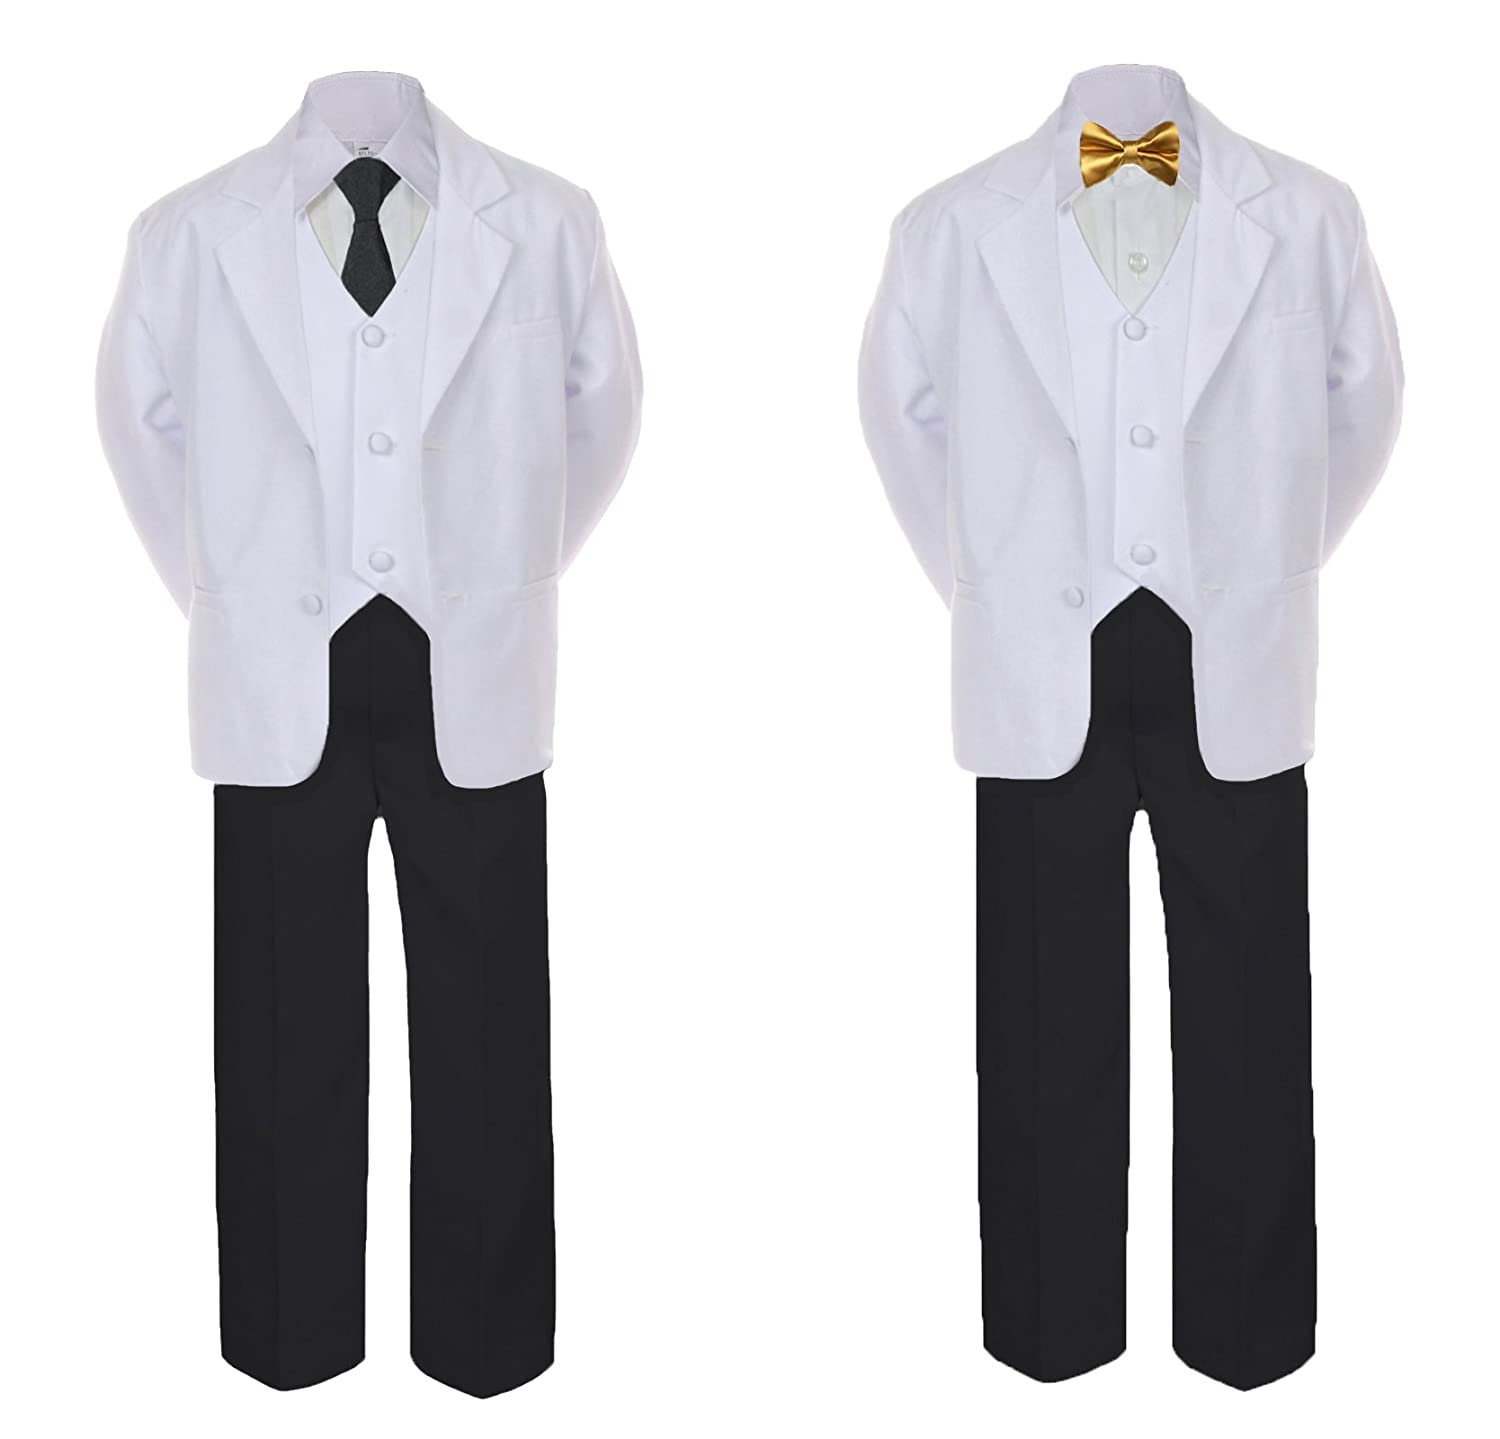 Unotux 5-7pc Formal Black White Suit Set Gold Bow Long Tie Vest Boy Baby Sm-20 Teen